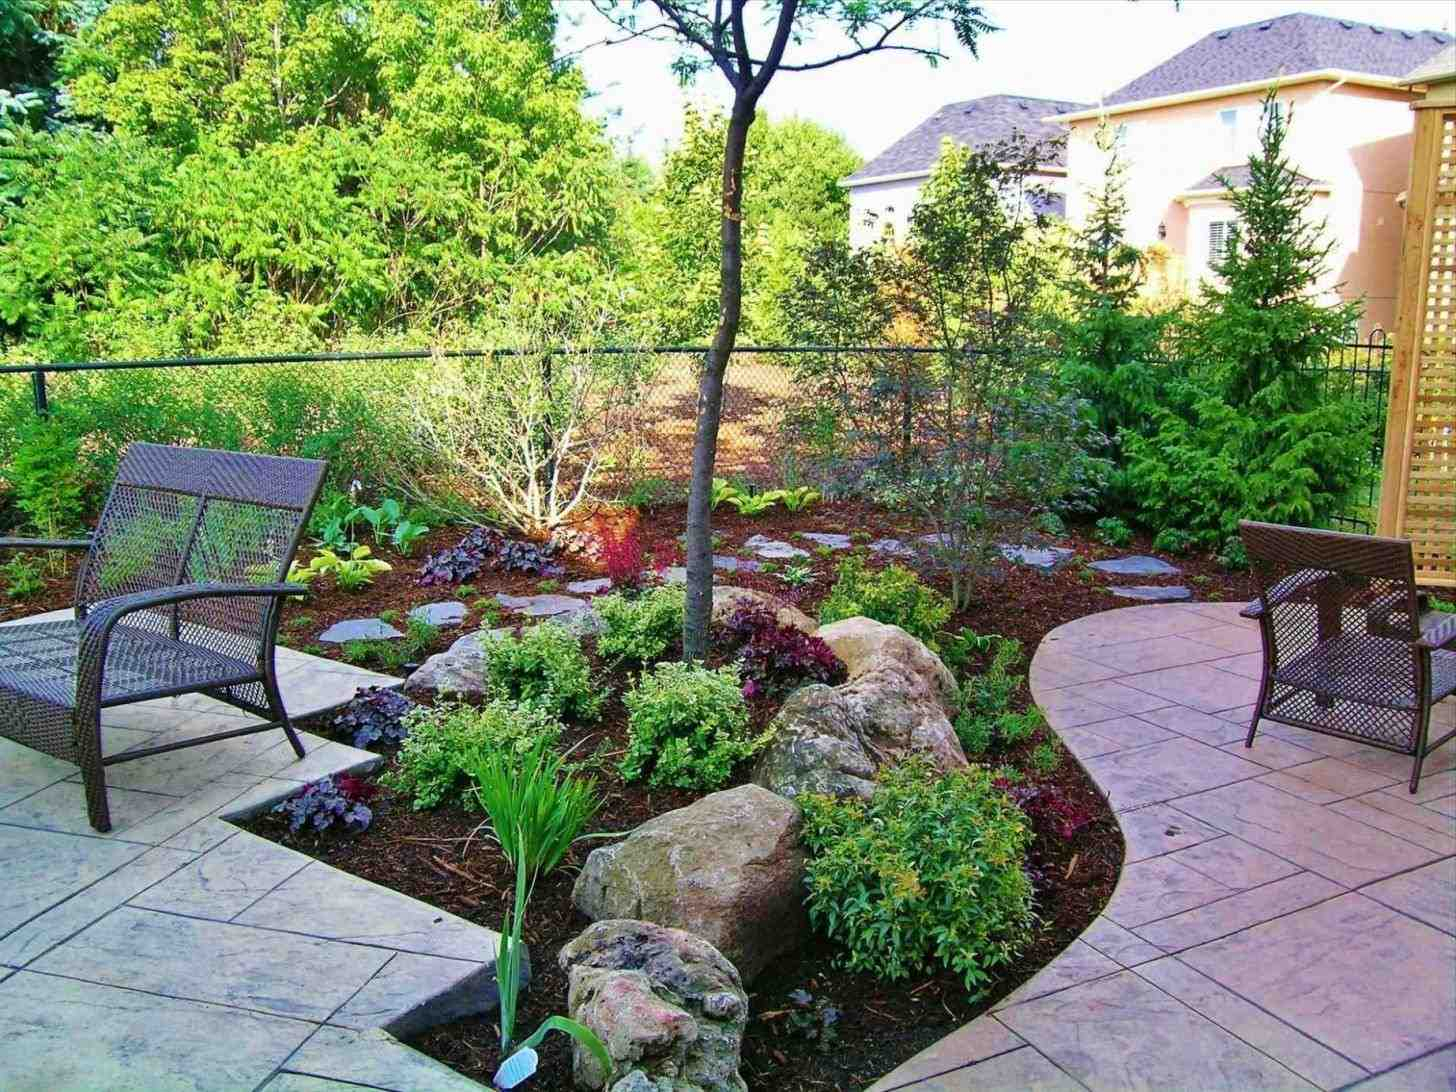 Ideas Do Myself Archives Laurenus Garden Inspiration Gardens And pertaining to 14 Genius Designs of How to Upgrade Small Backyard Landscaping Ideas Do Myself